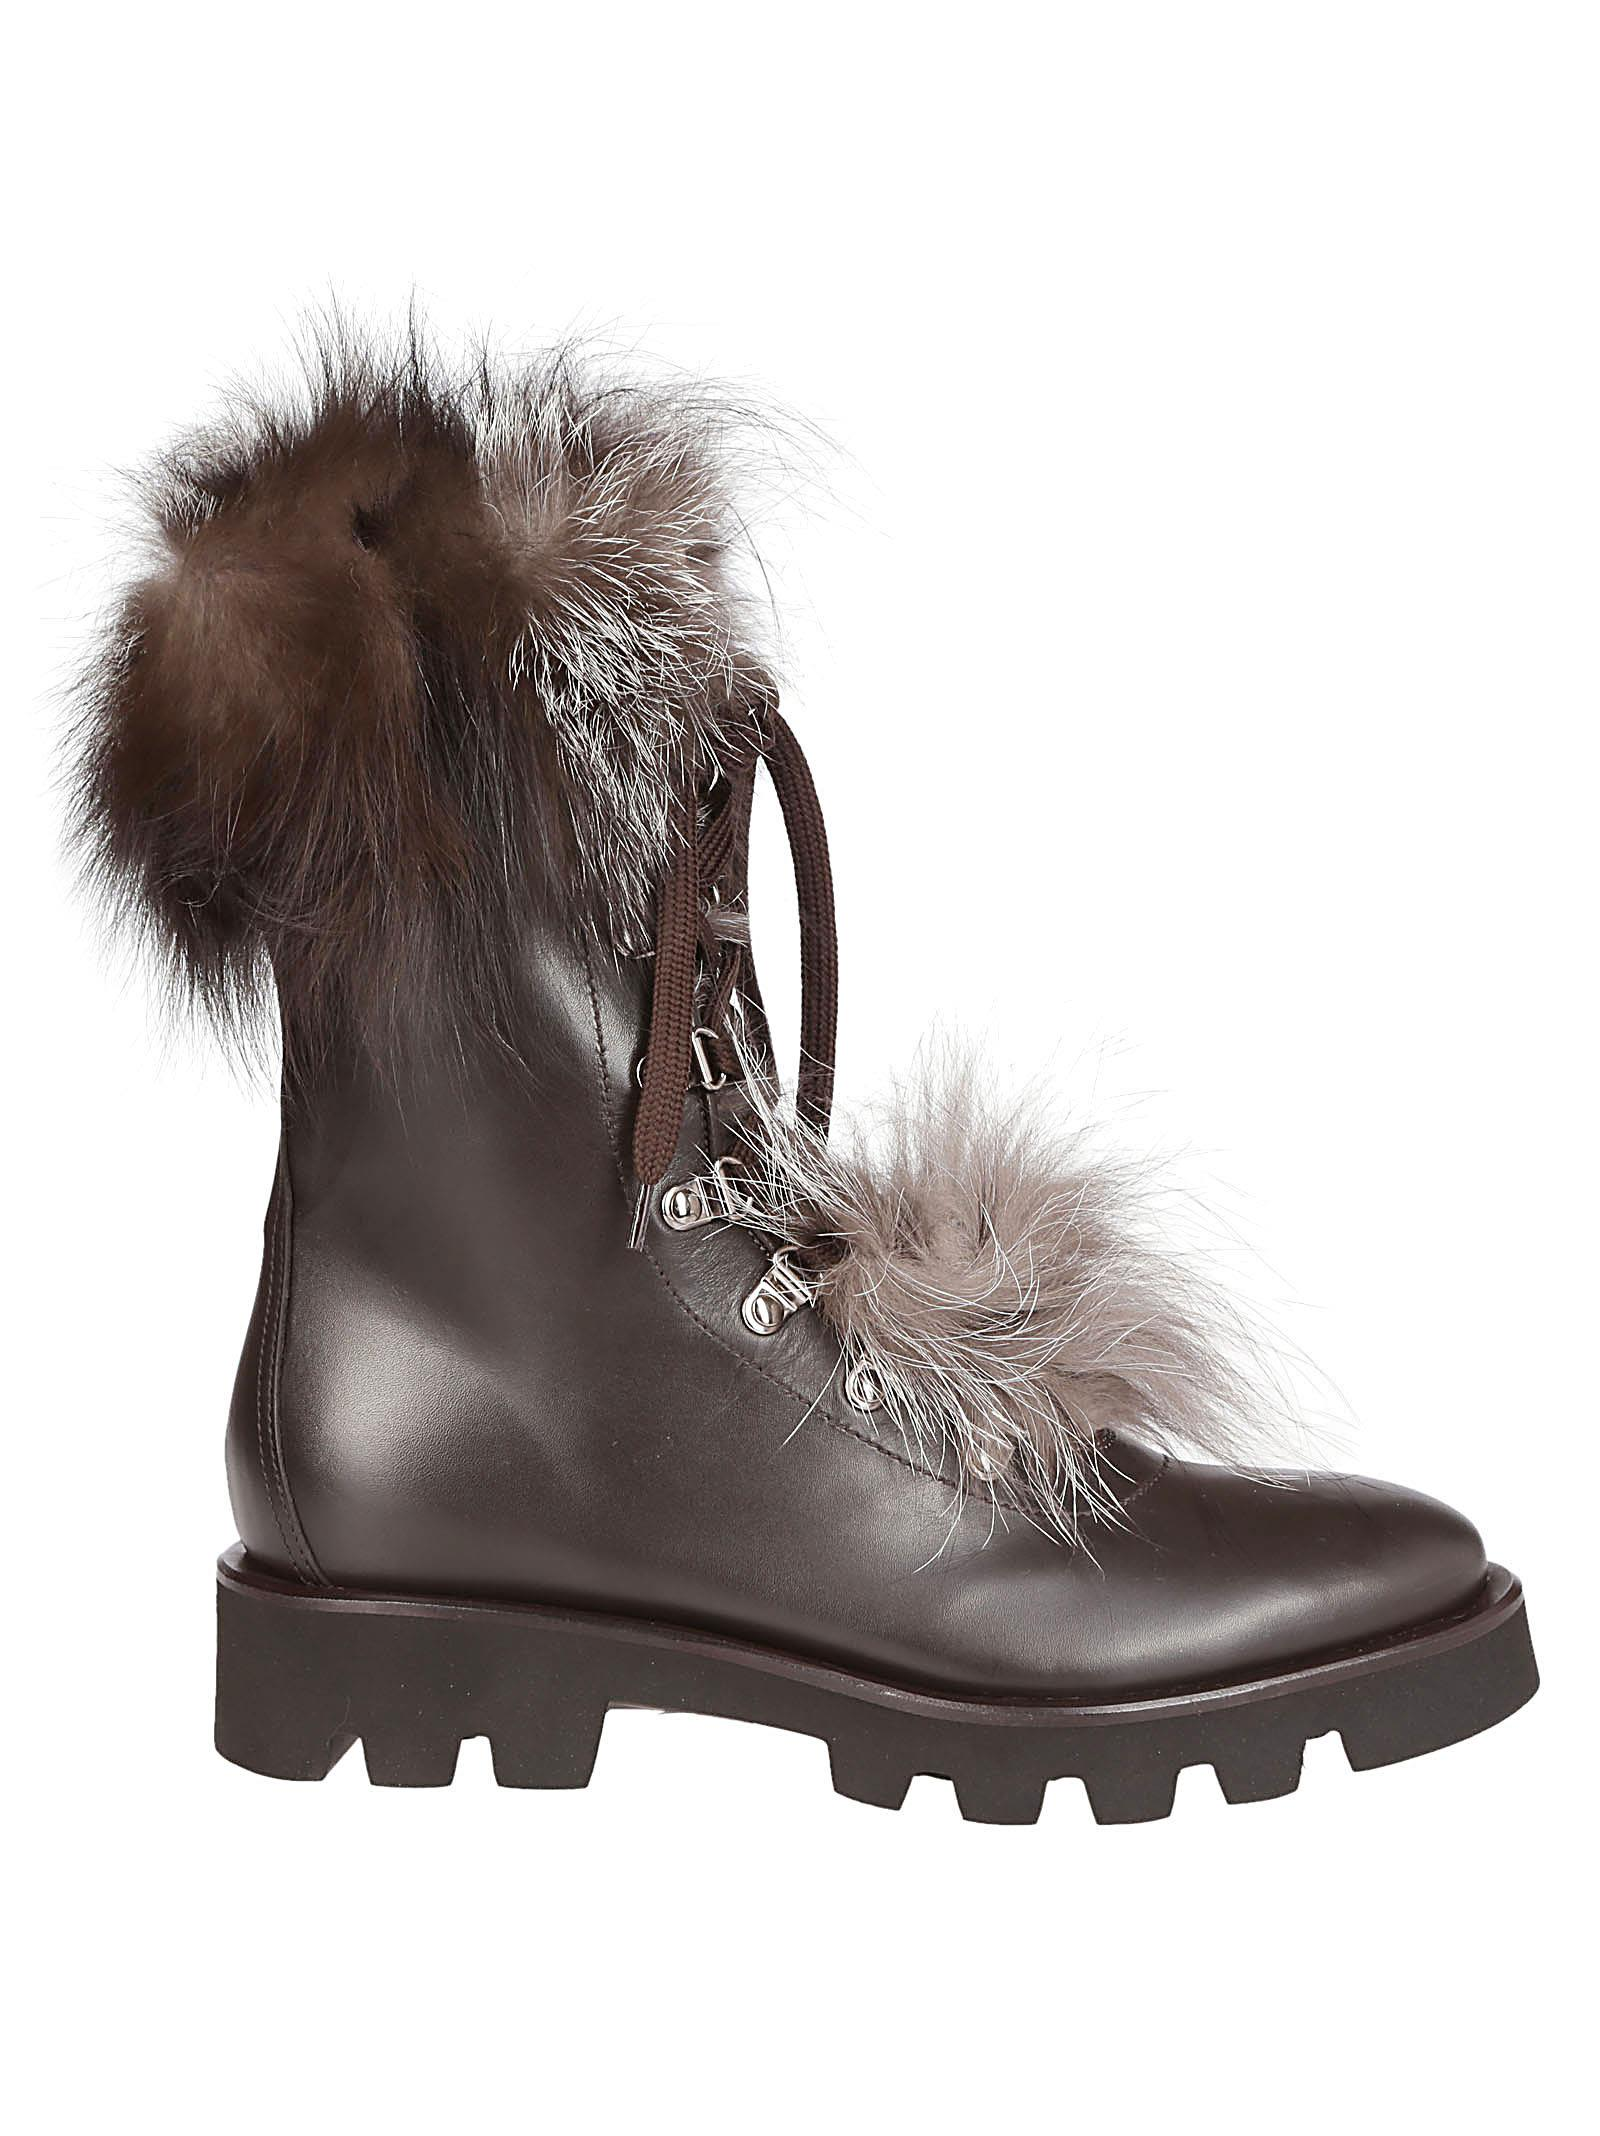 FABIANA FILIPPI FUR TRIMMED LACE-UP BOOTS